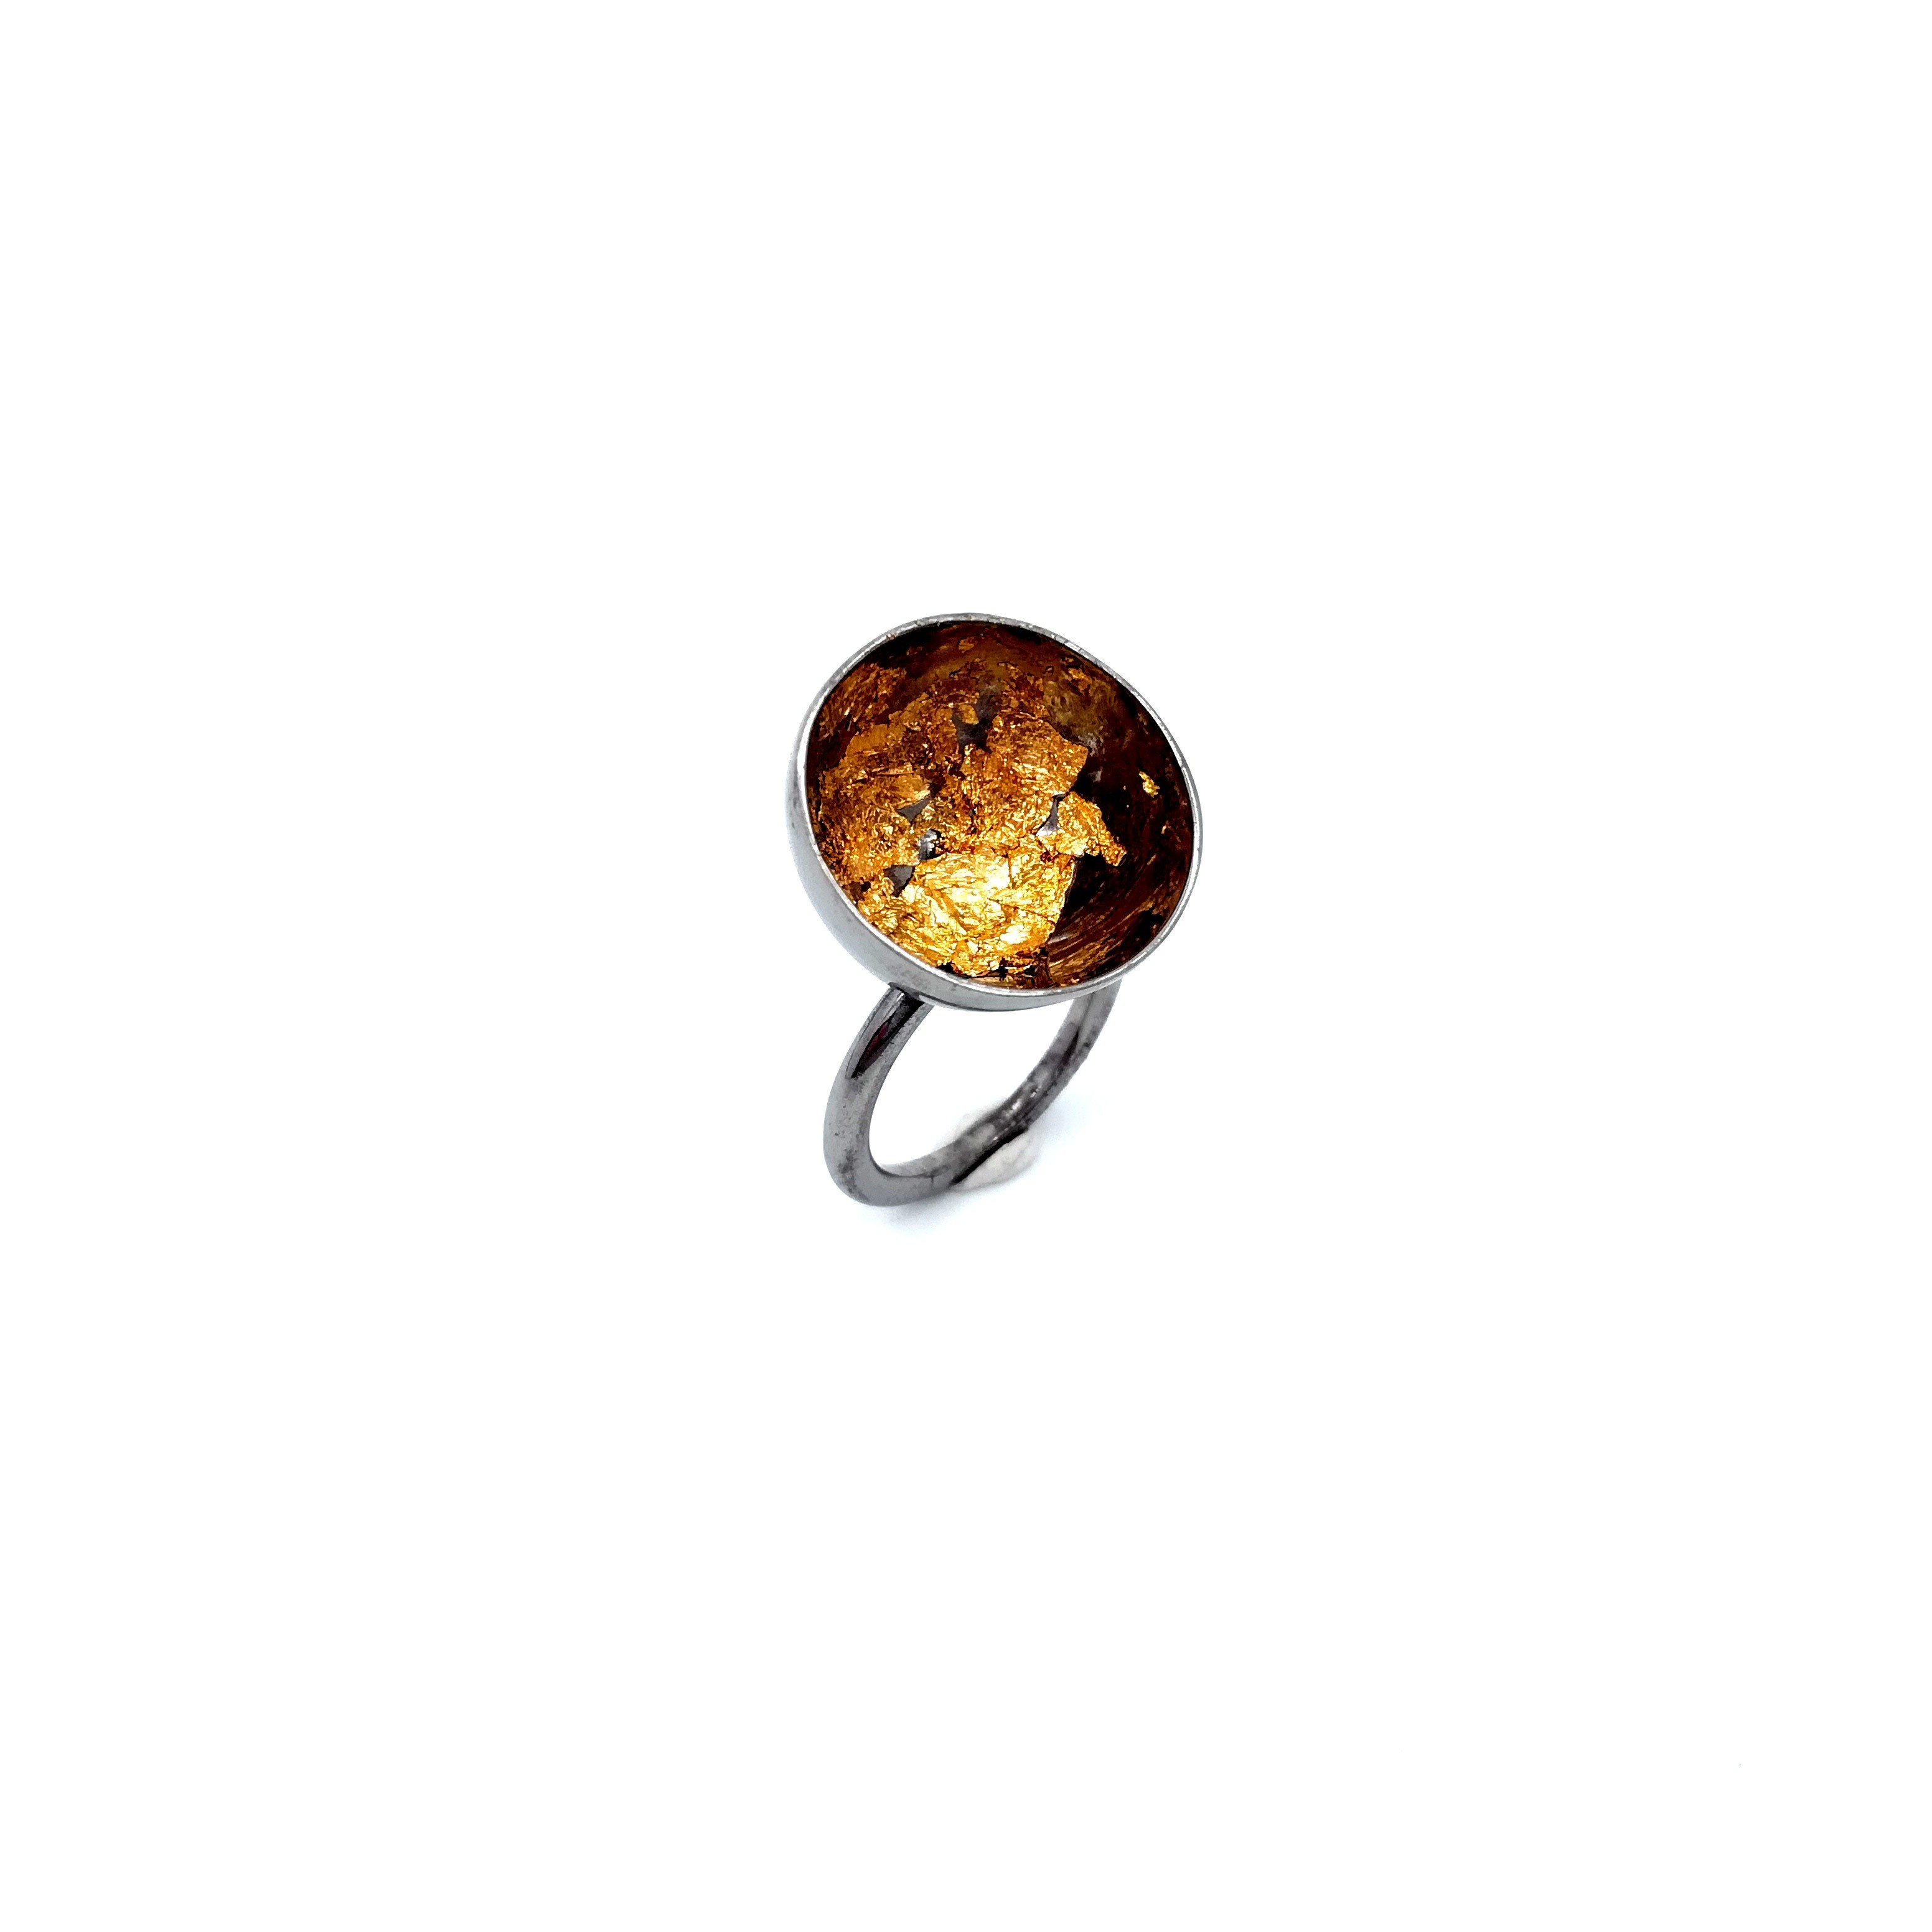 Silver ring 925 rhodium plated with resin and gold leaf 22K